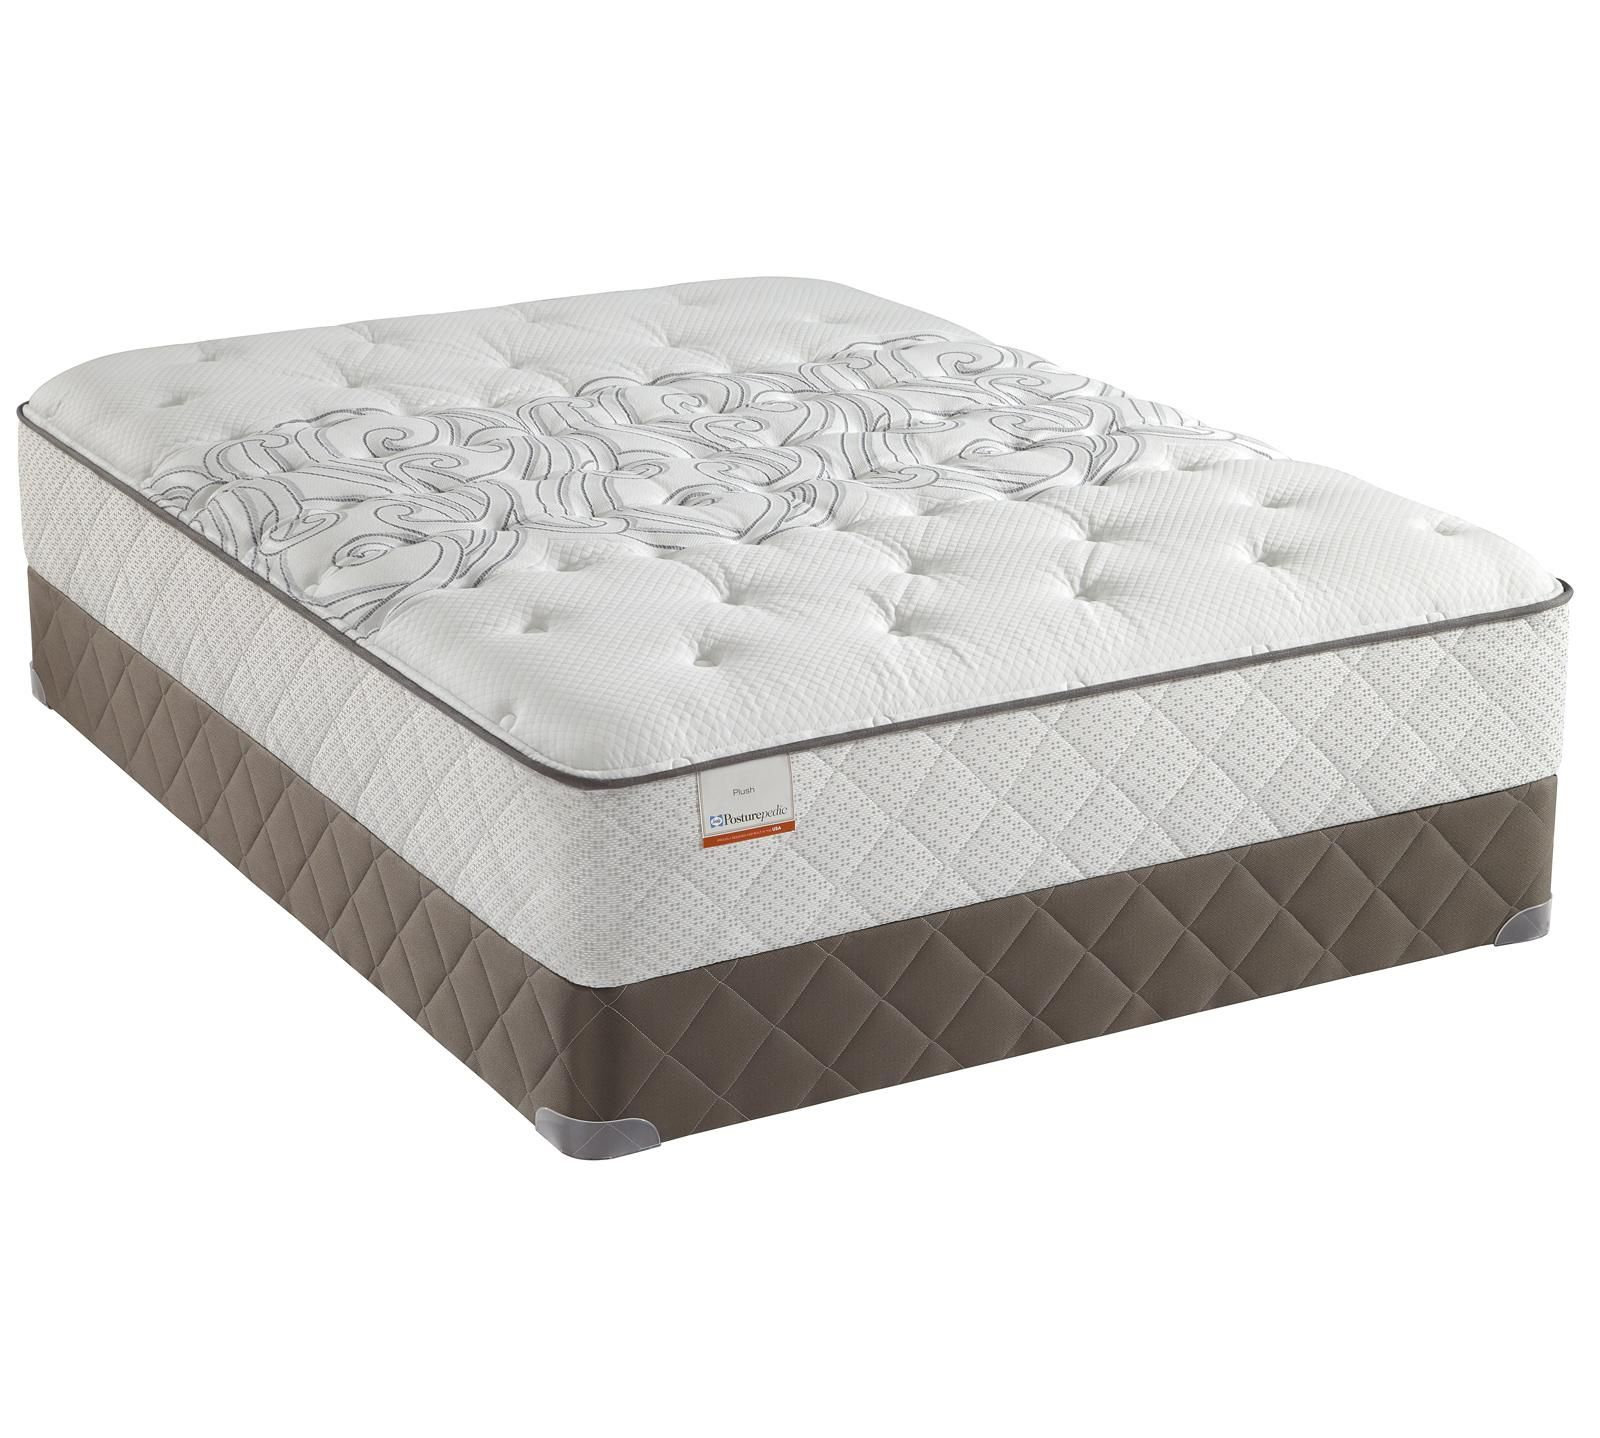 The Sealy Posturepedic Santa Ana Plush Features Anium Alloy Coils And Gel Memory Foam Coresupport